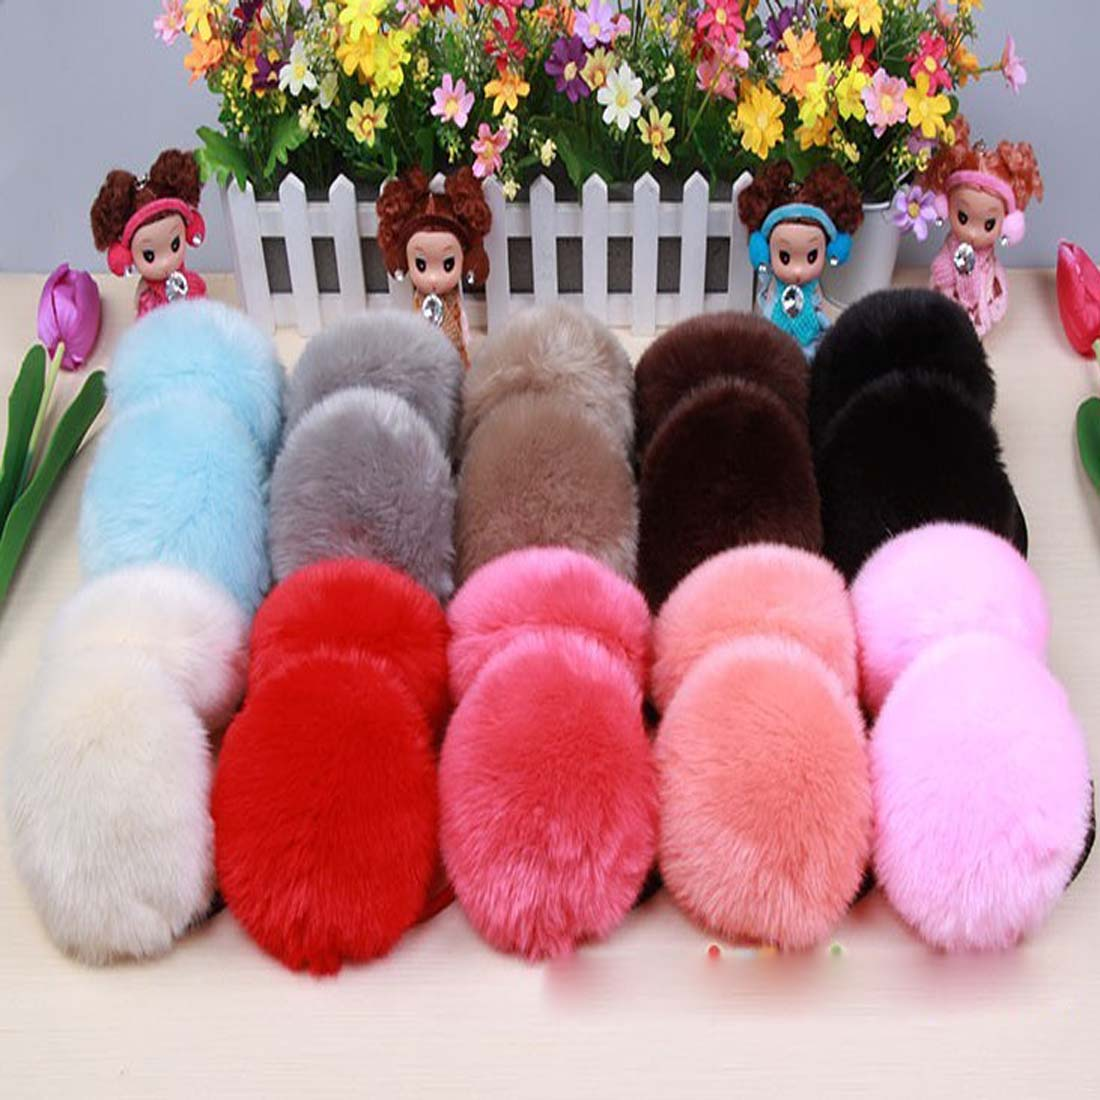 Fashion Warm Cute Plush Fuzzy Faux Ears Earmuffs Thick Student Ear Muffs Solid Girls Headband Ears Soft Winter Accessories